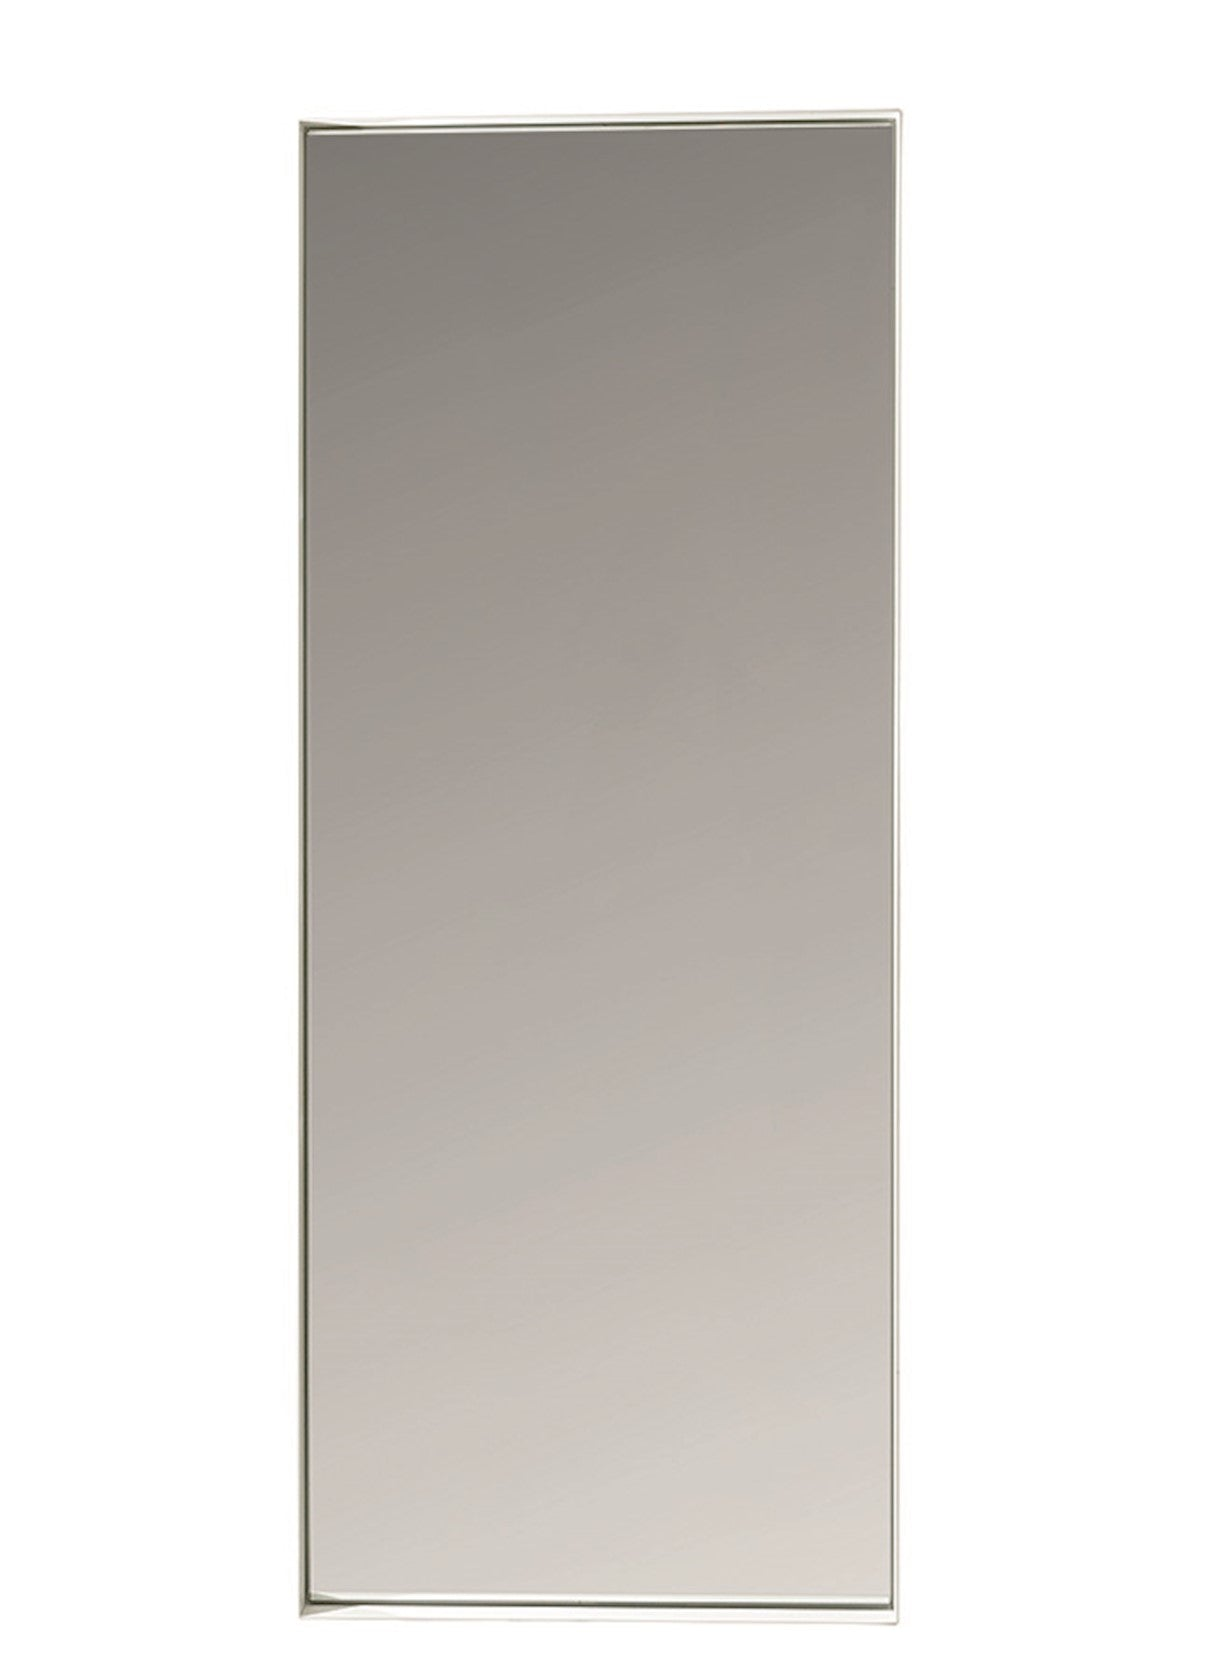 MIRROR 'IRON' - Mirrors - SCAPA HOME - SCAPA HOME OFFICIAL